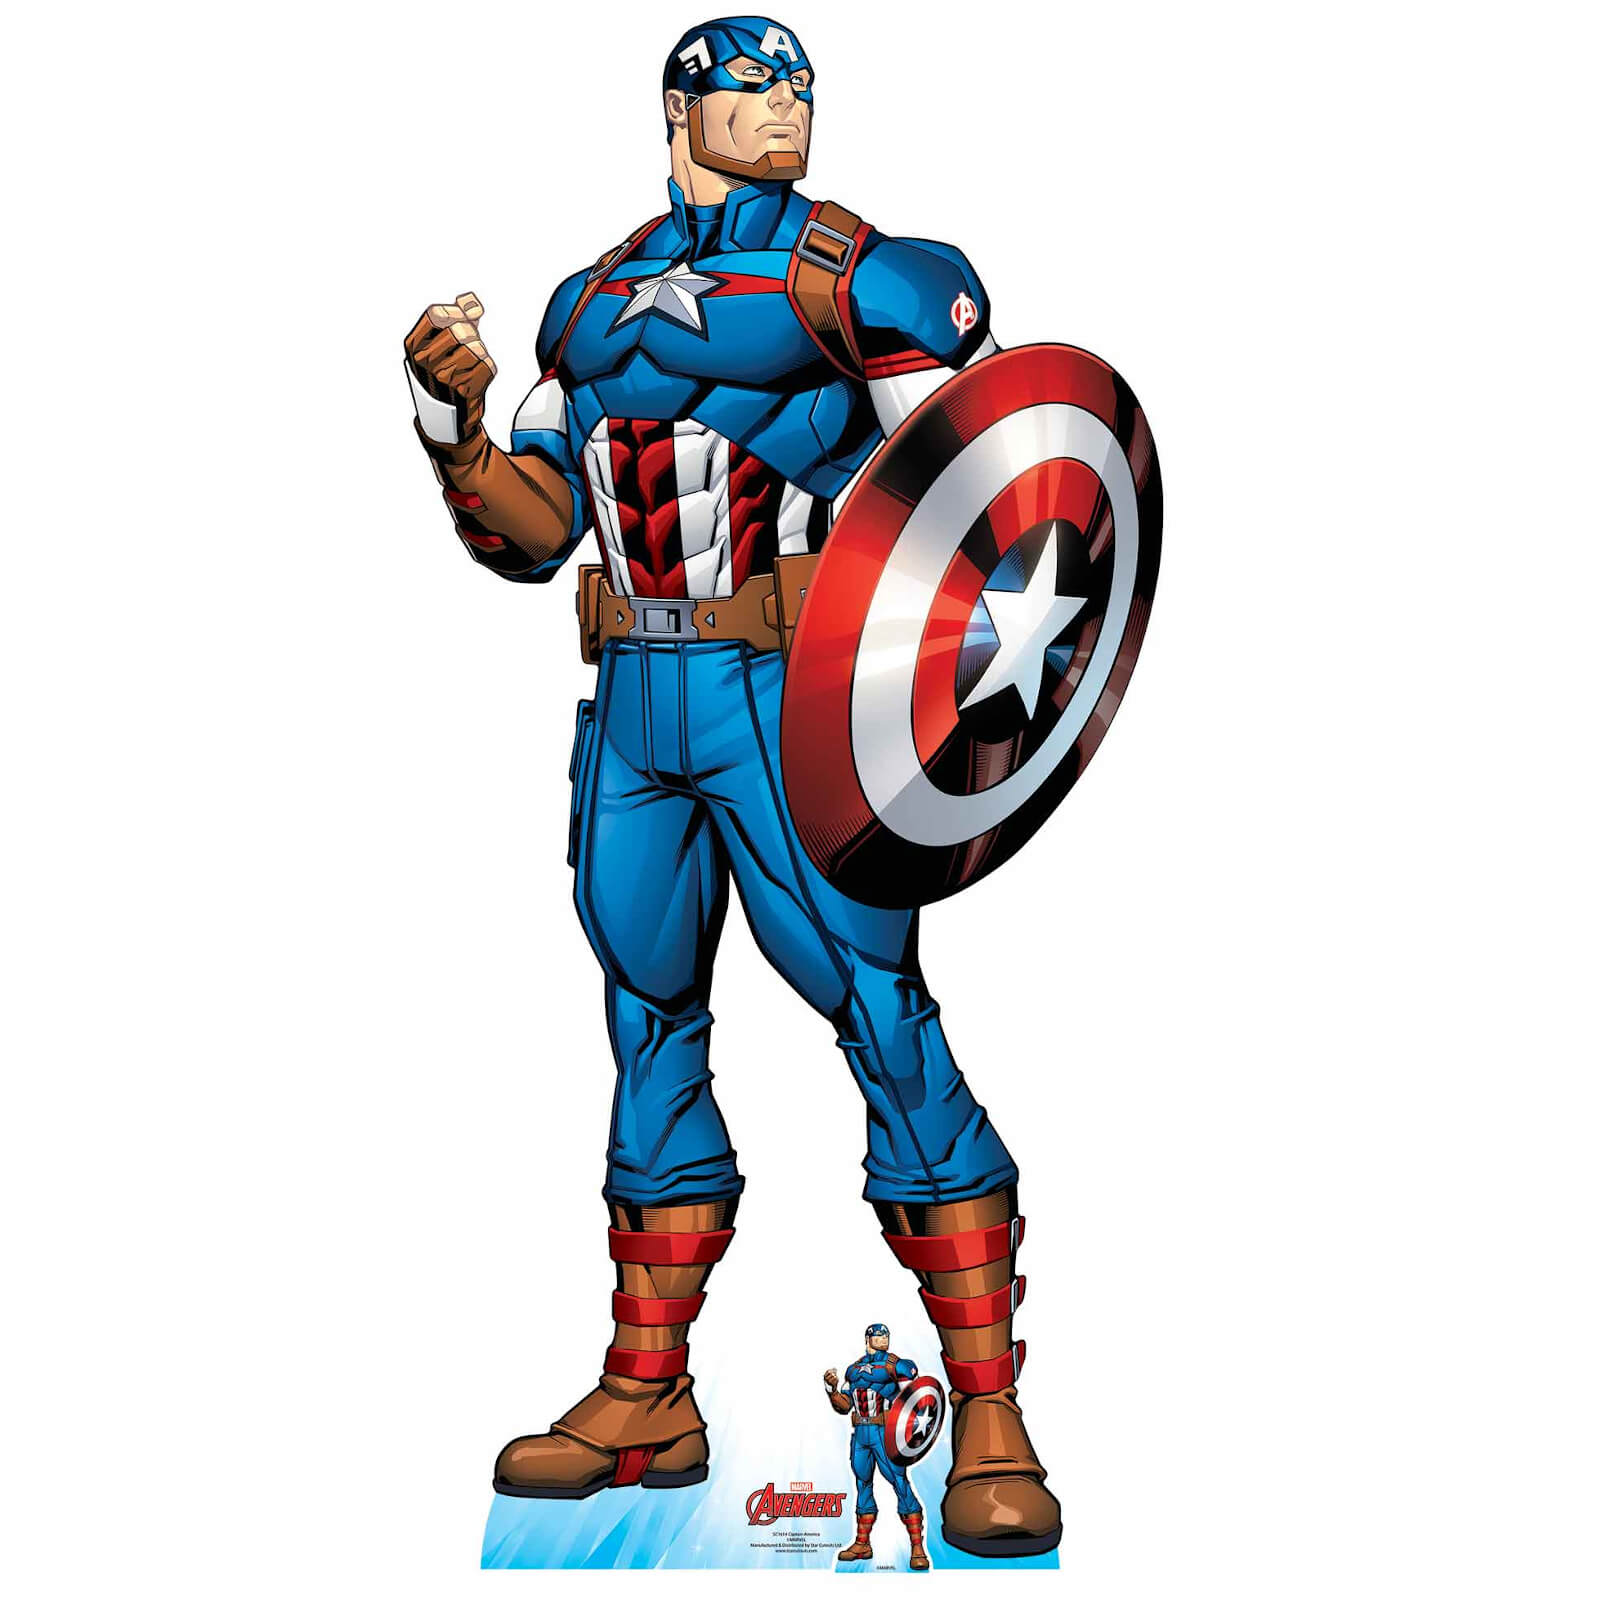 Image of The Avengers Captain America Oversized Cardboard Cut Out